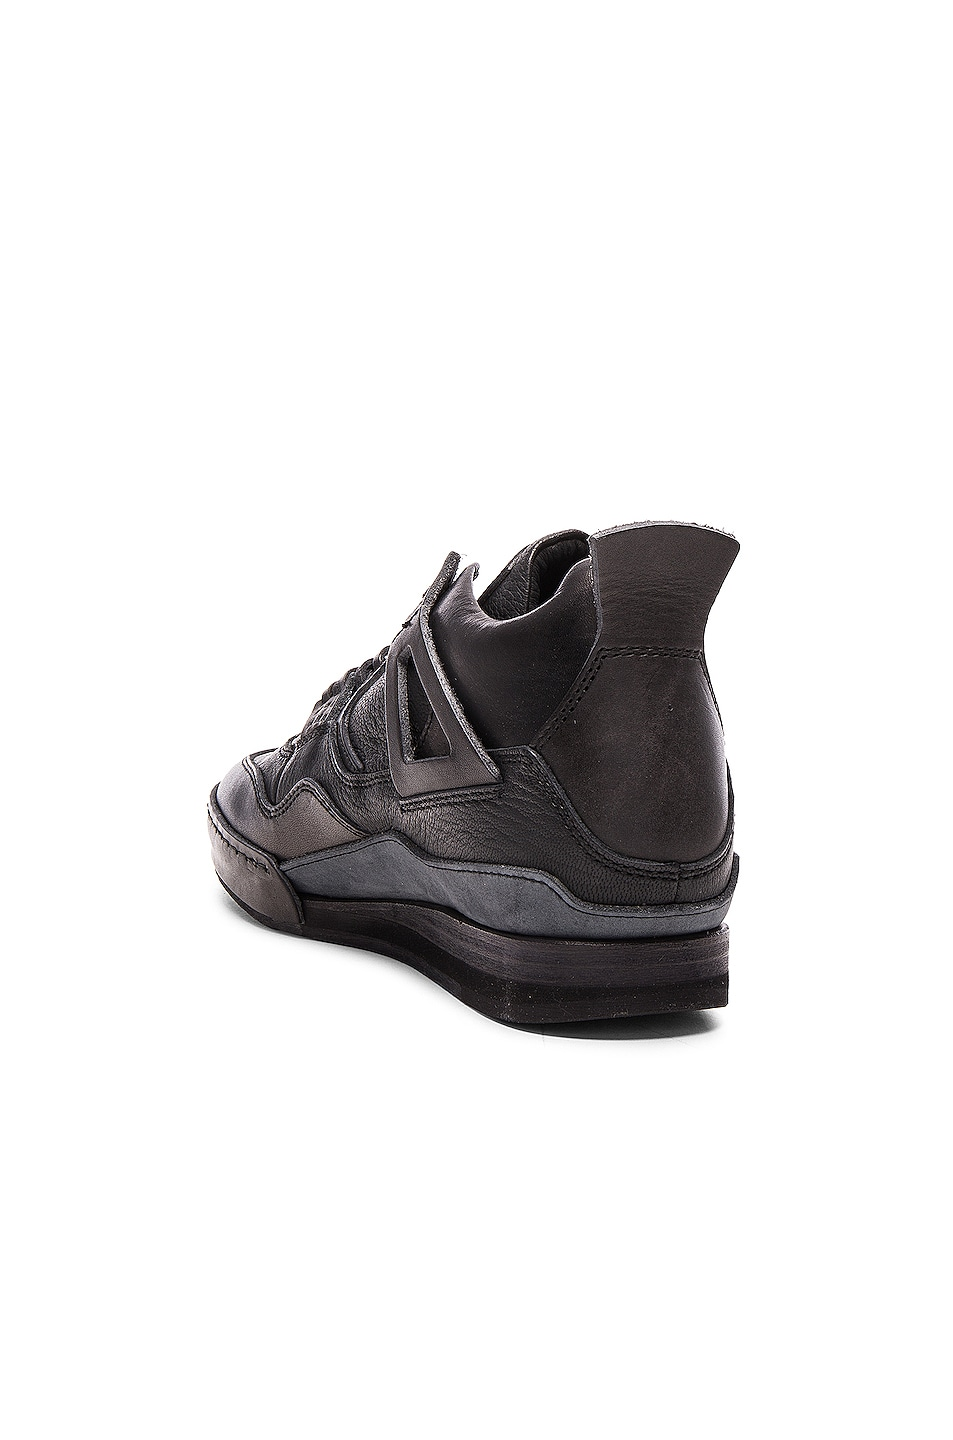 Image 3 of Hender Scheme Manual Industrial Product 10 in Black